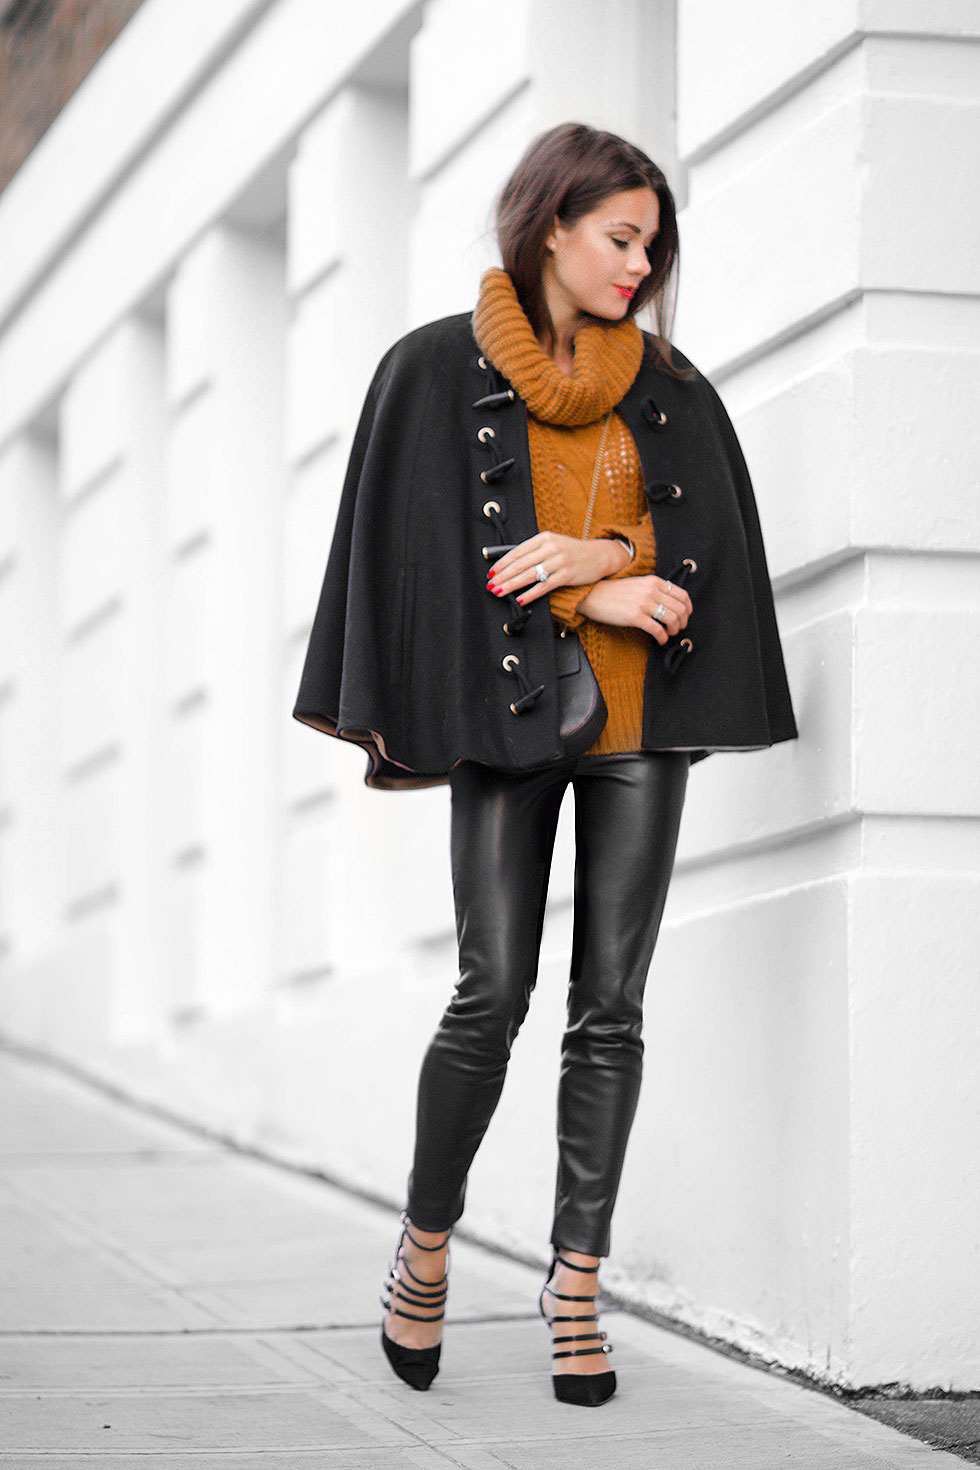 Rachel Zoe black wool cape Yellow High Neck Cable Knit Sweater Faux Leather Skinny Pants Caged Pointed High Heels